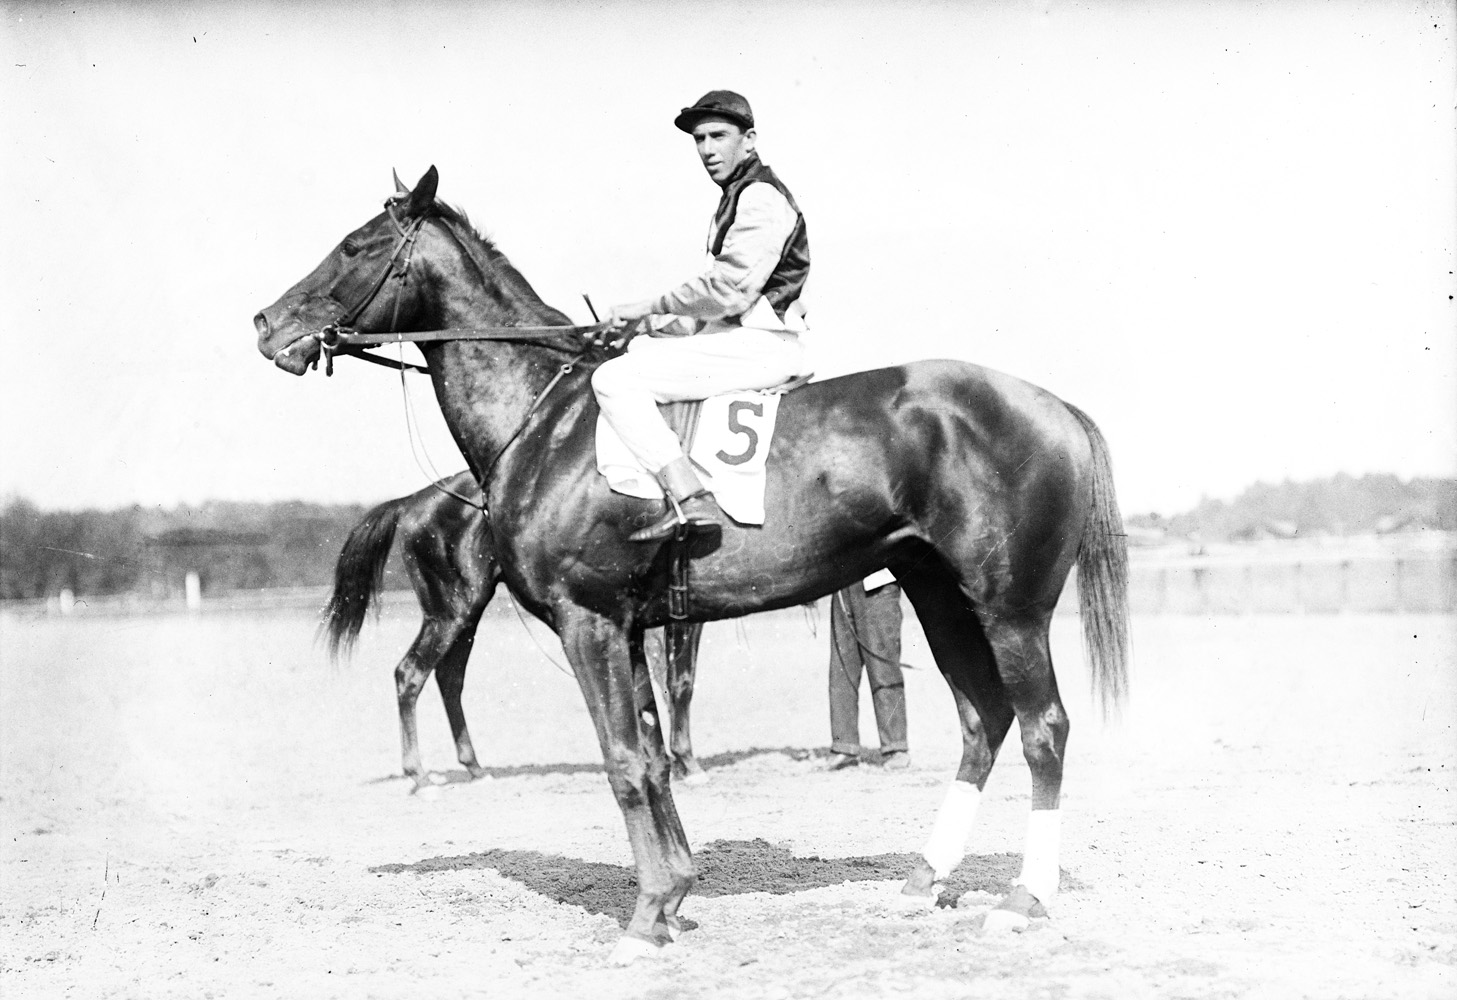 Carroll Shilling and Novelty at Saratoga, August 1910 (Keeneland Library Cook Collection)